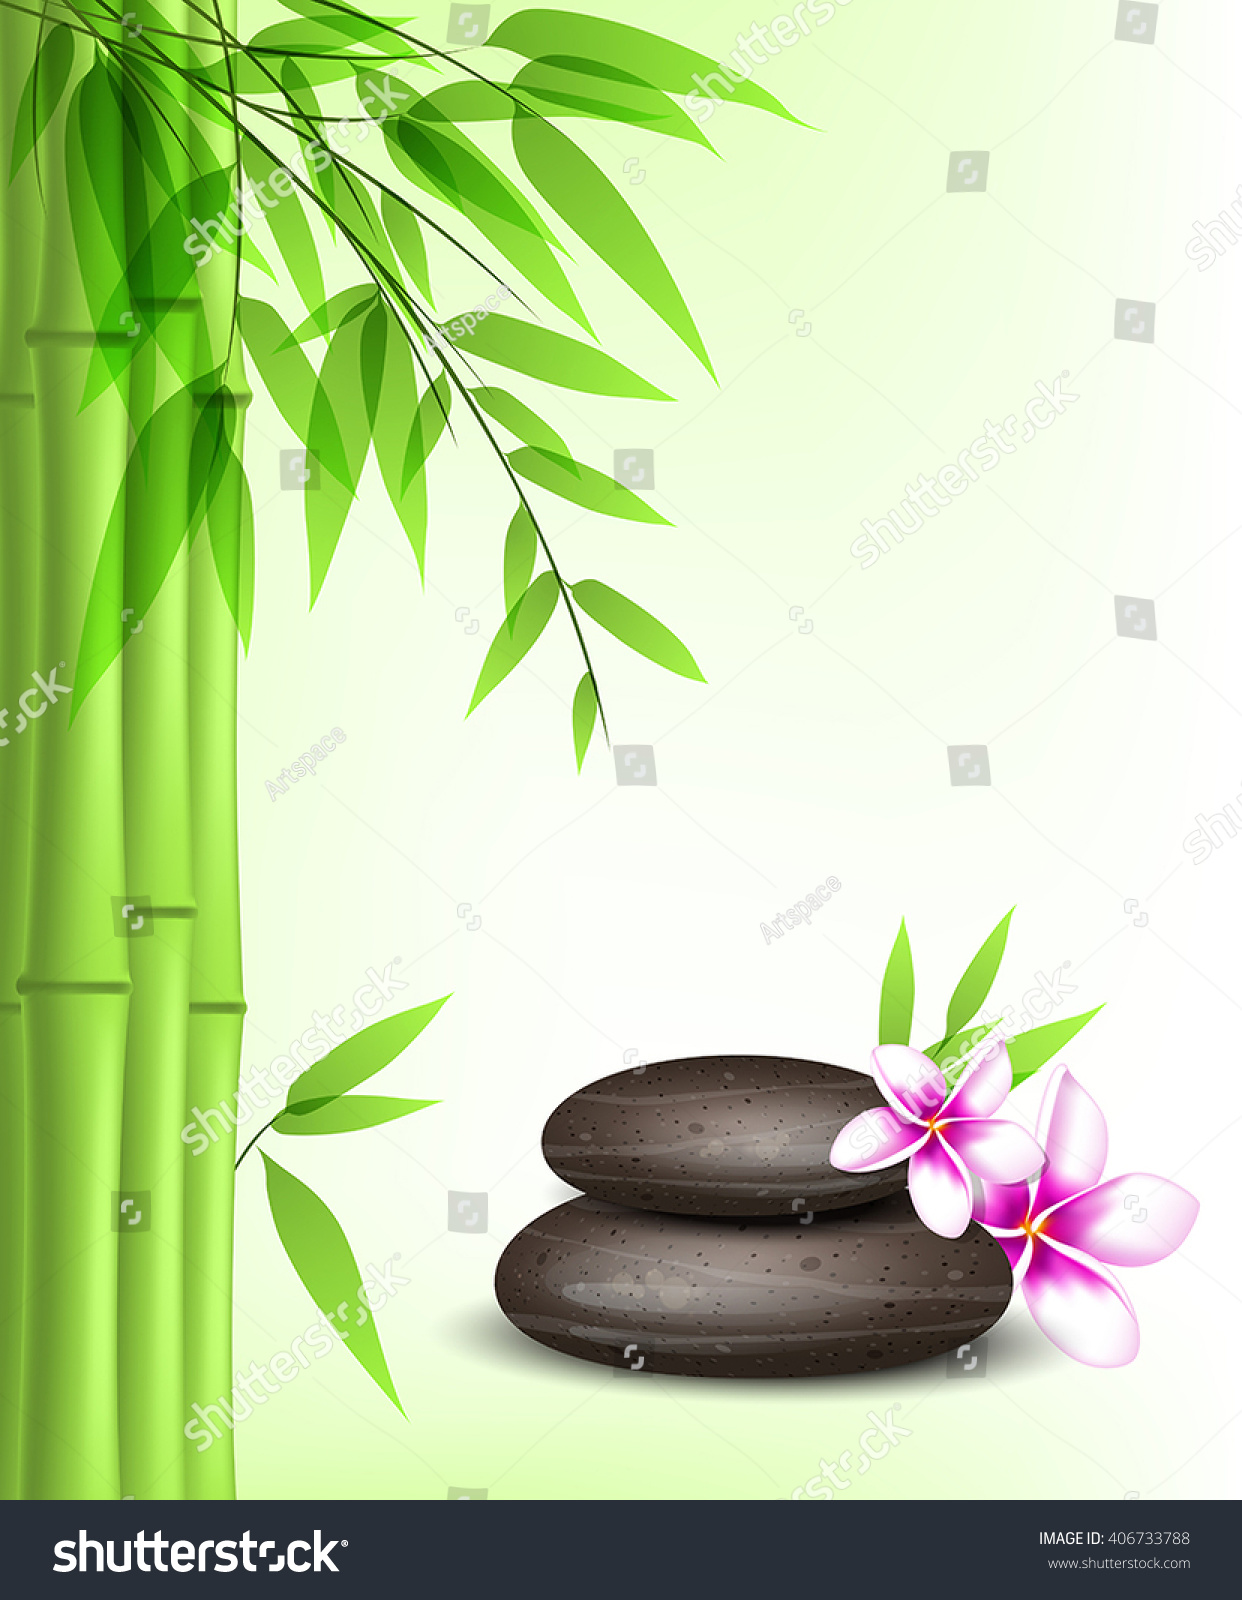 bamboo spa logo - photo #30